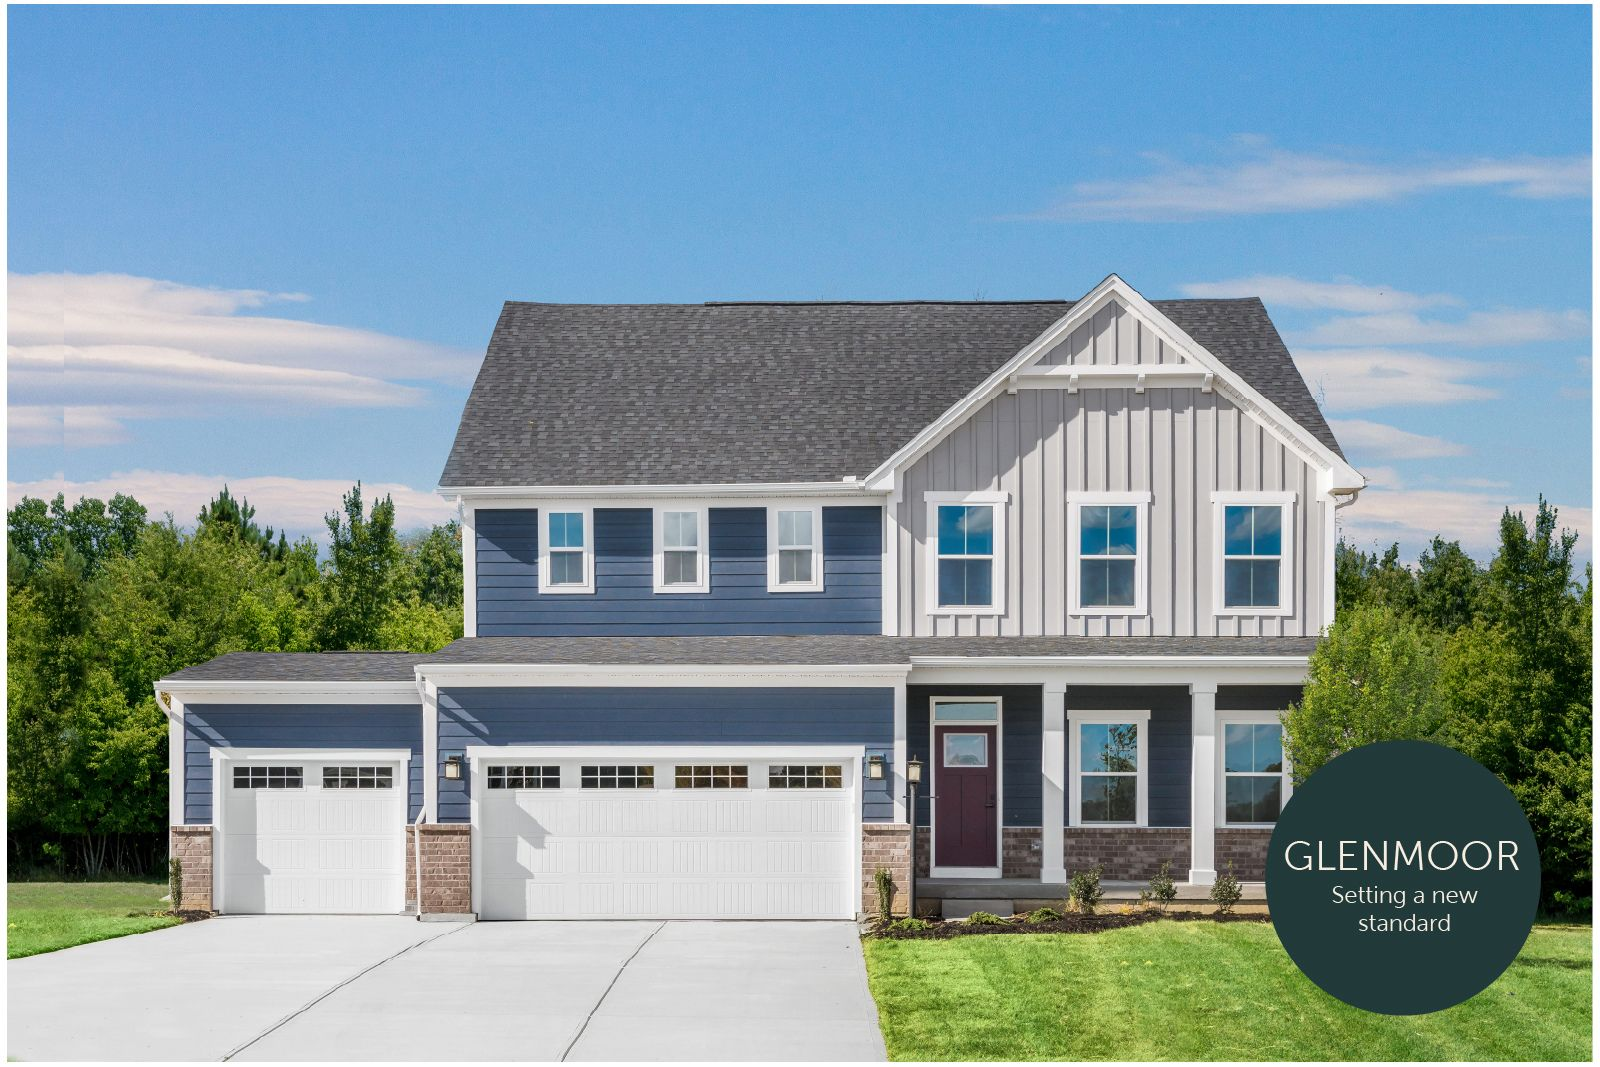 Setting a New Standard in Glenmoor:Charming new homes w/ true curb appeal, 1/2 acre yards & 3-car garages. Just 5 mi to Chesapeake but 1/2 the taxes. Value & beauty at every turn, from the $340s.Contact us now to schedule a visit!